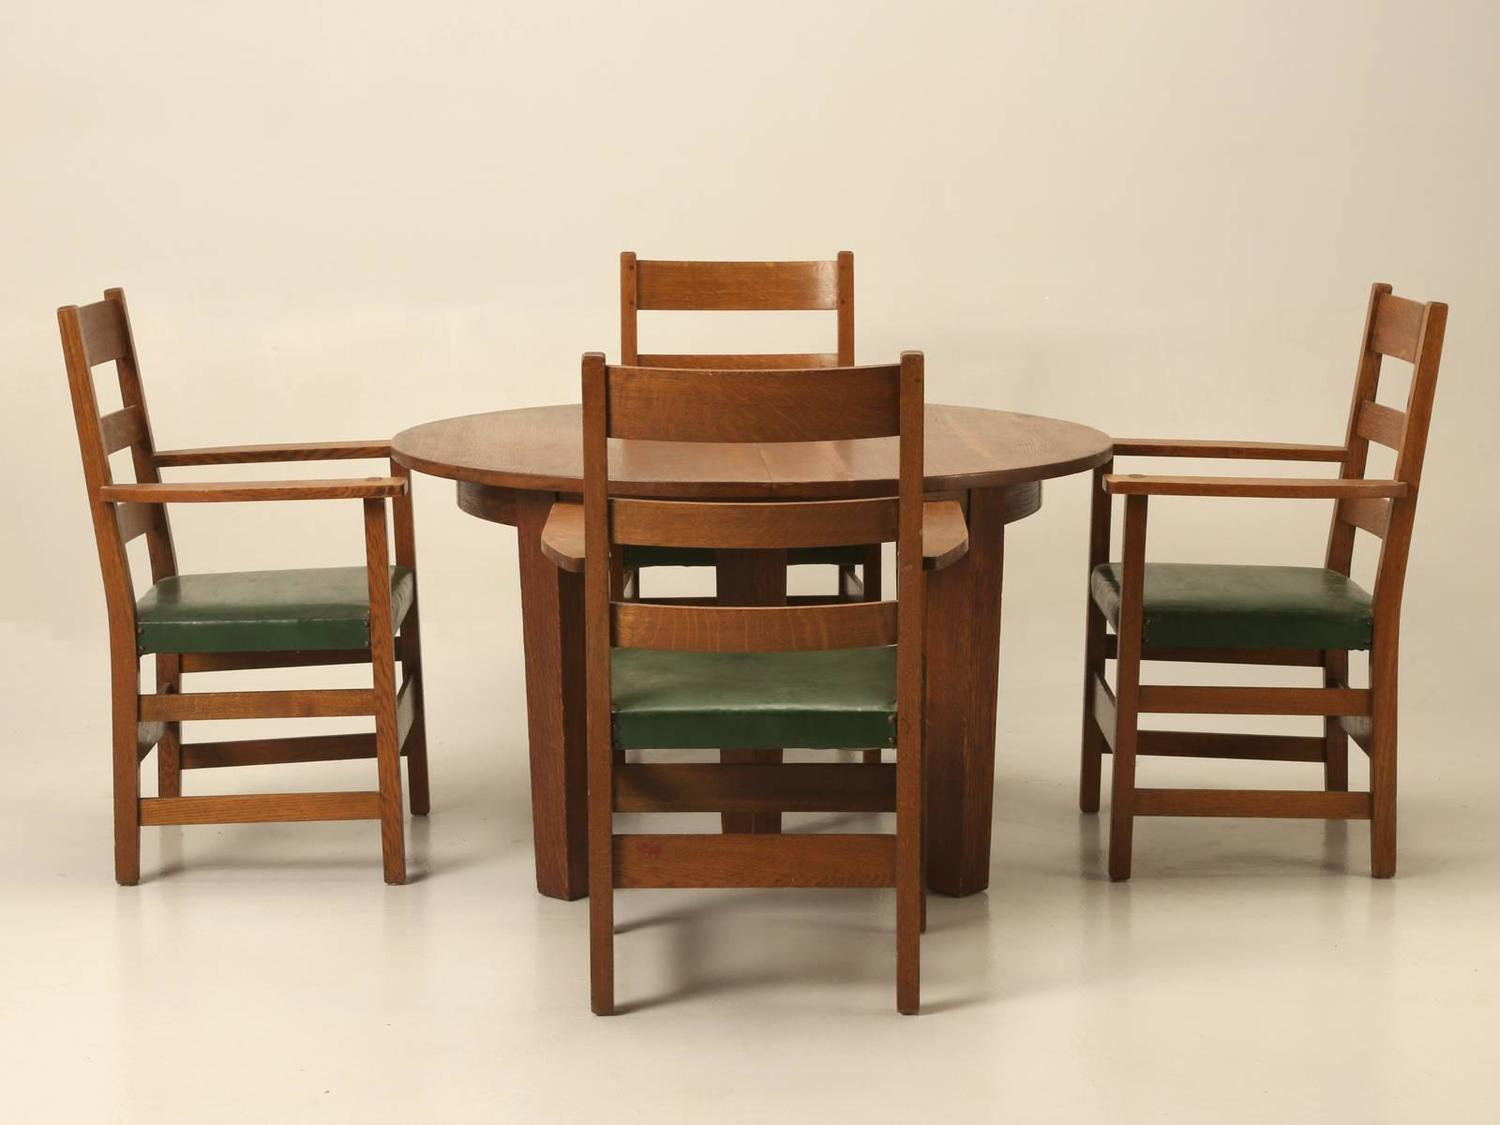 Arts And Crafts Dining Table And Chairs: Arts And Craft Dining Table And Chairs In Original